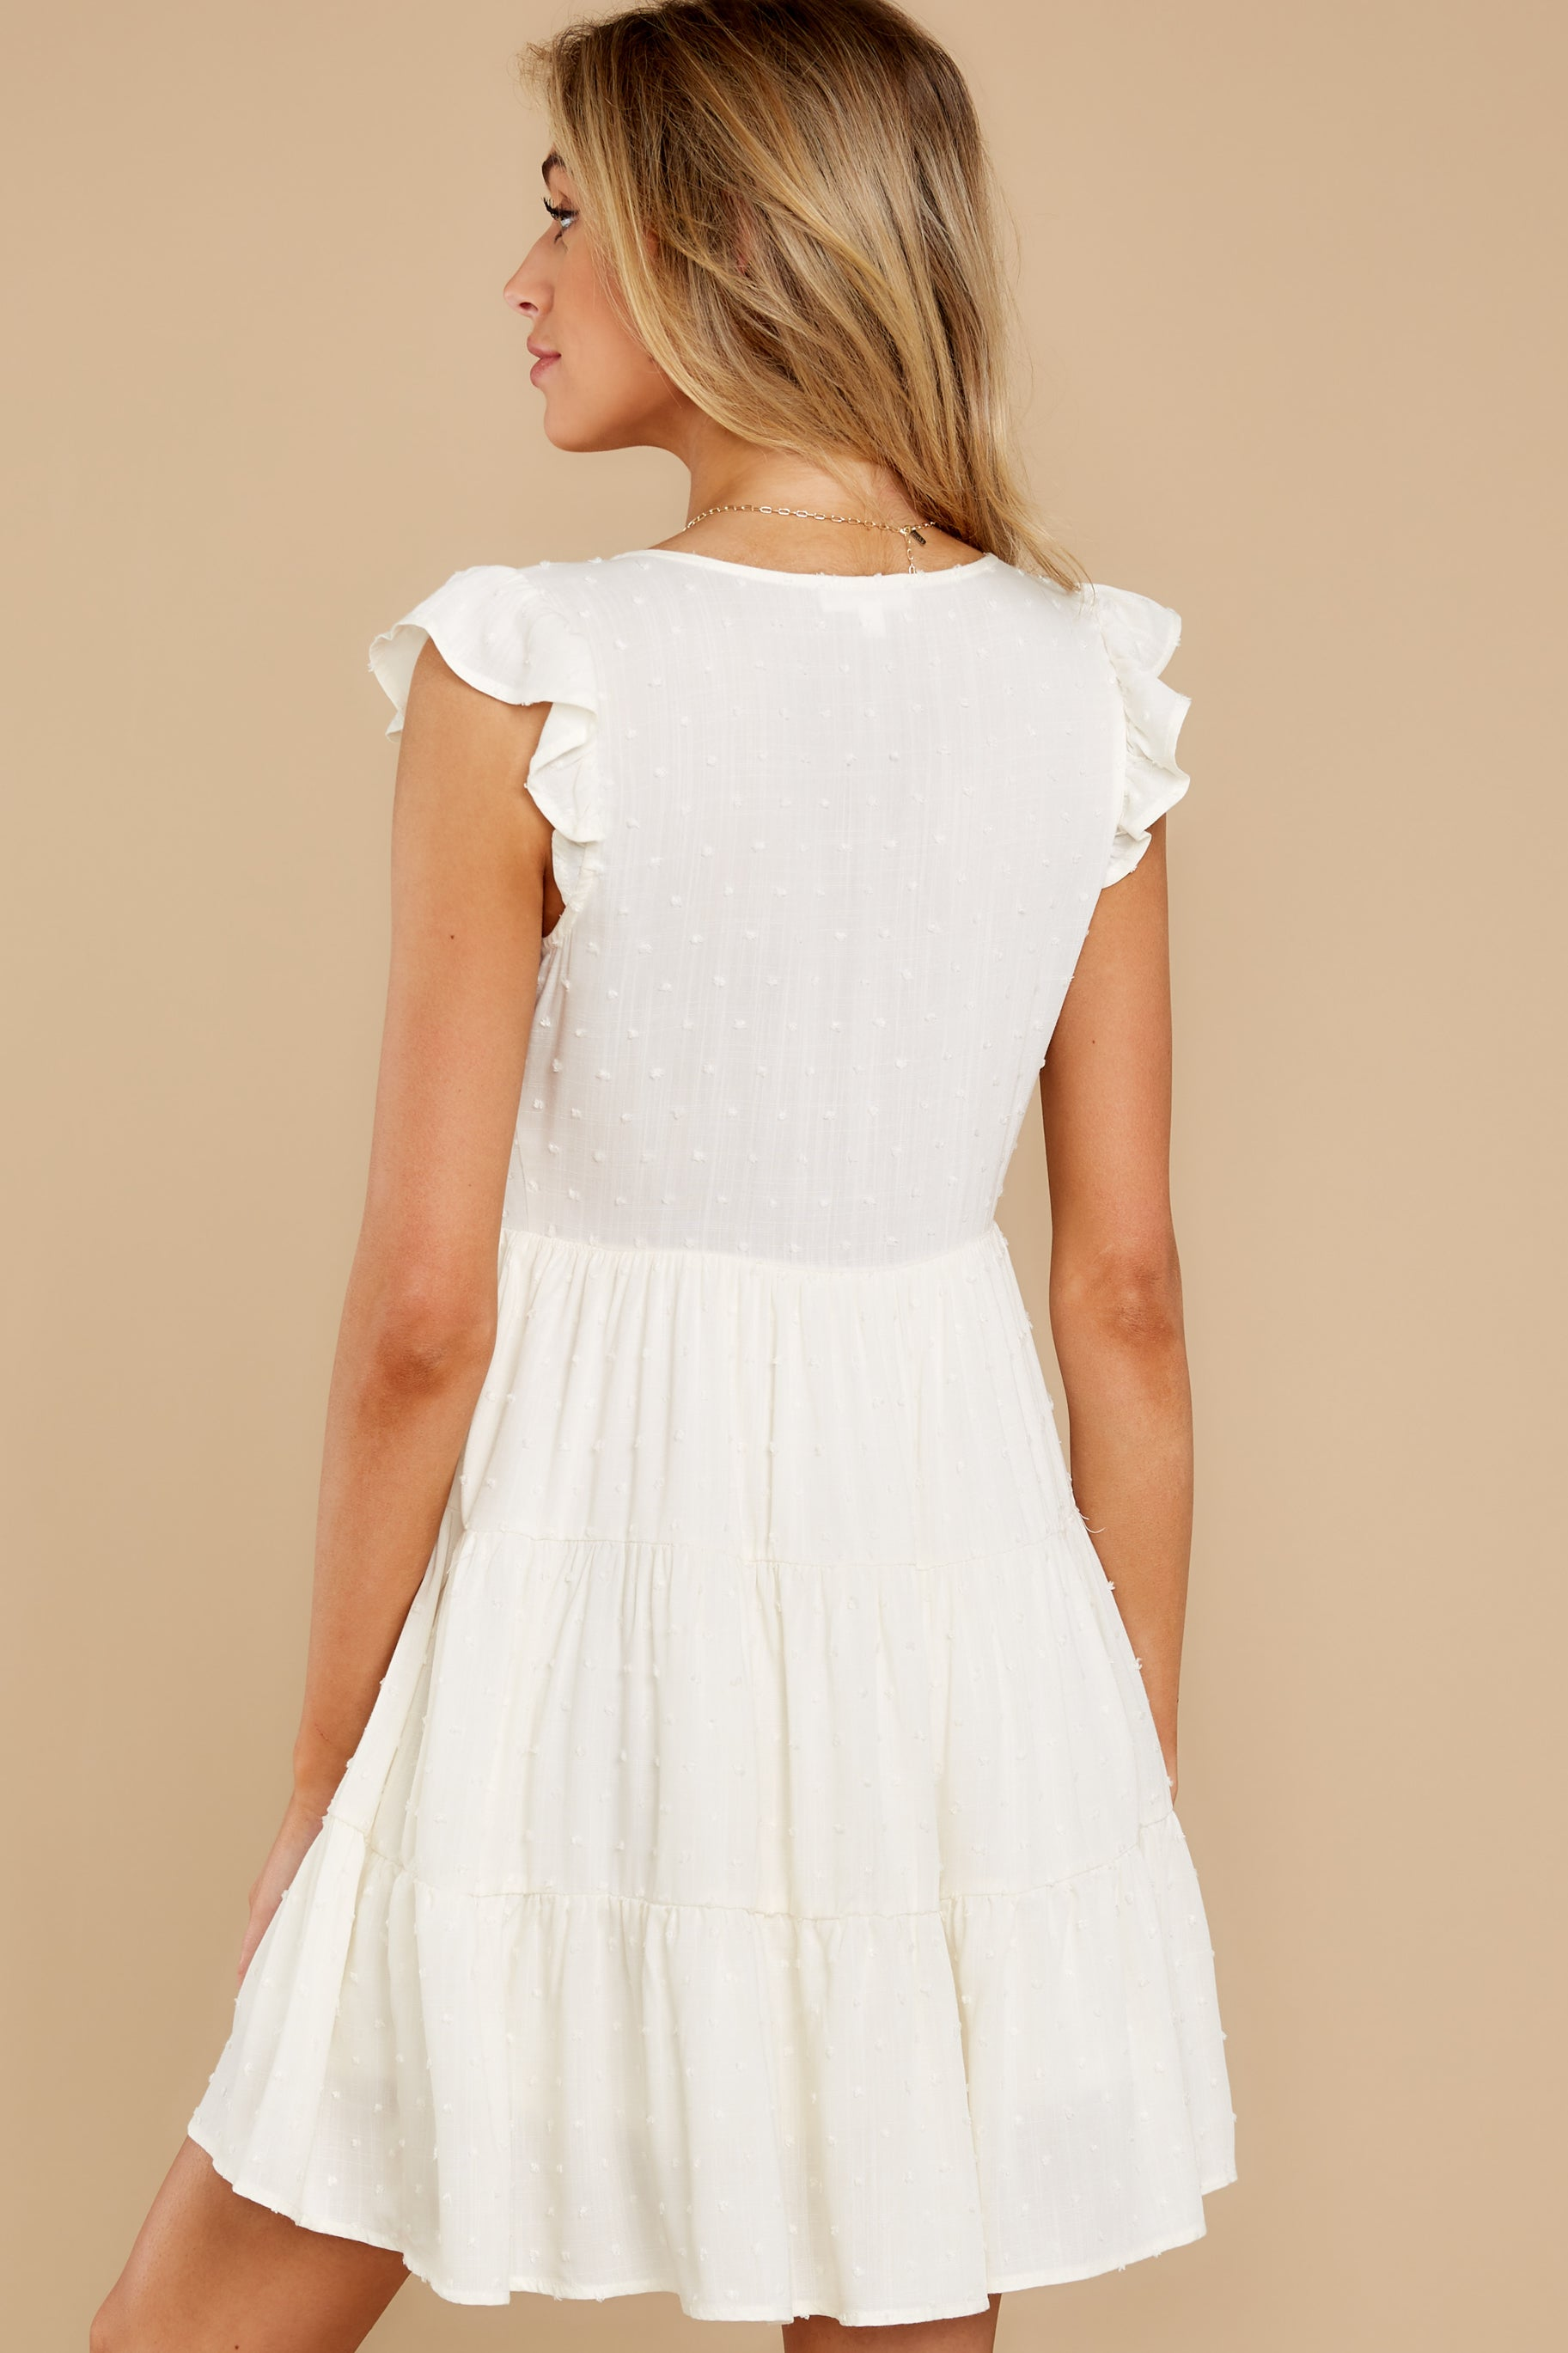 8 With Promises White Dress at reddress.com